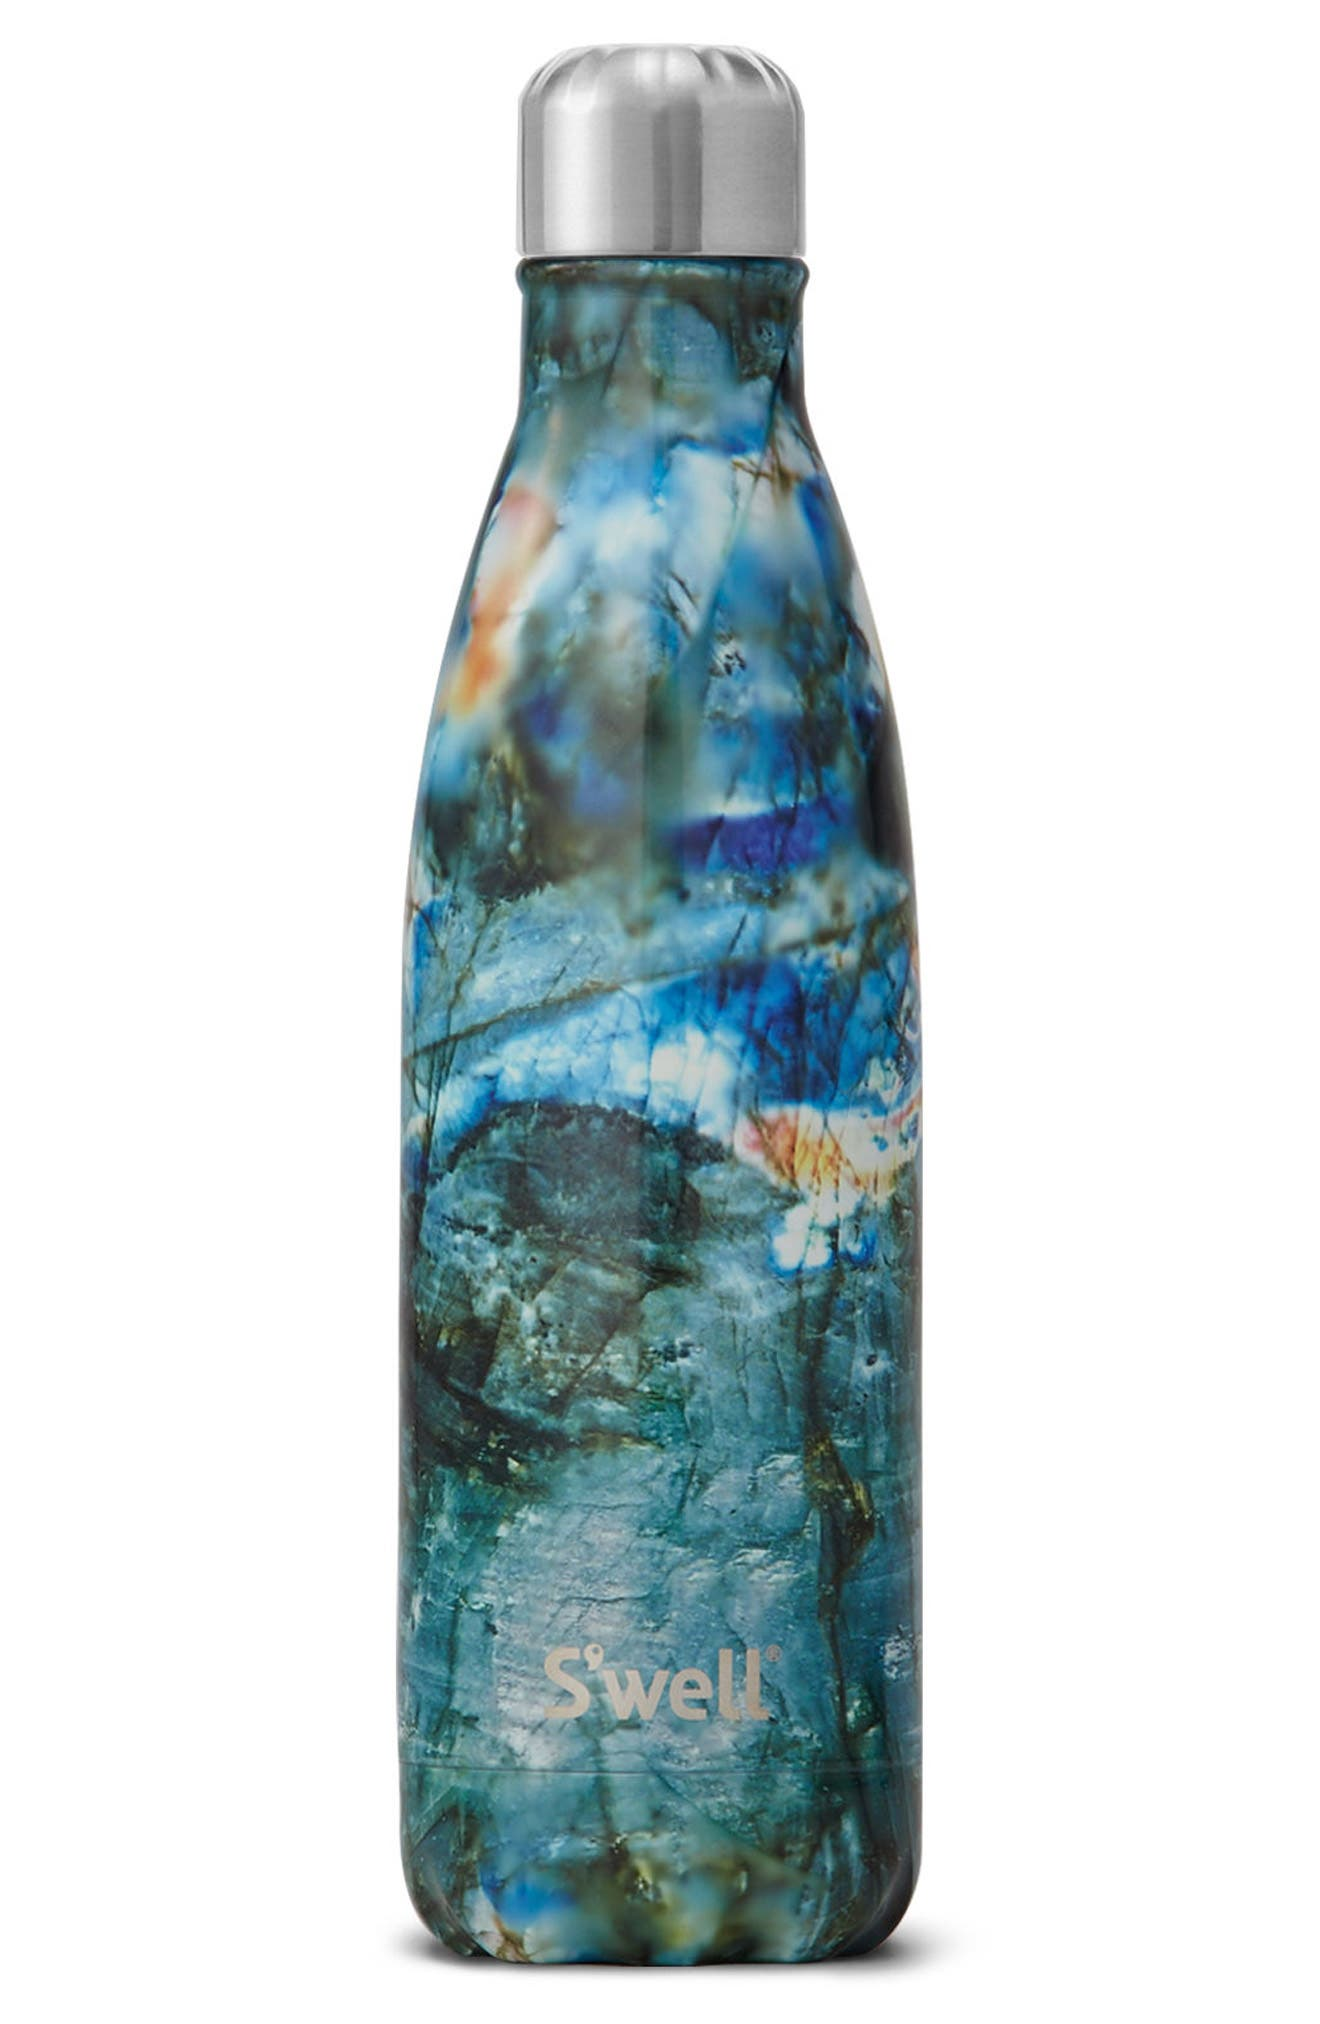 S'well Labradorite Insulated Stainless Steel Water Bottle